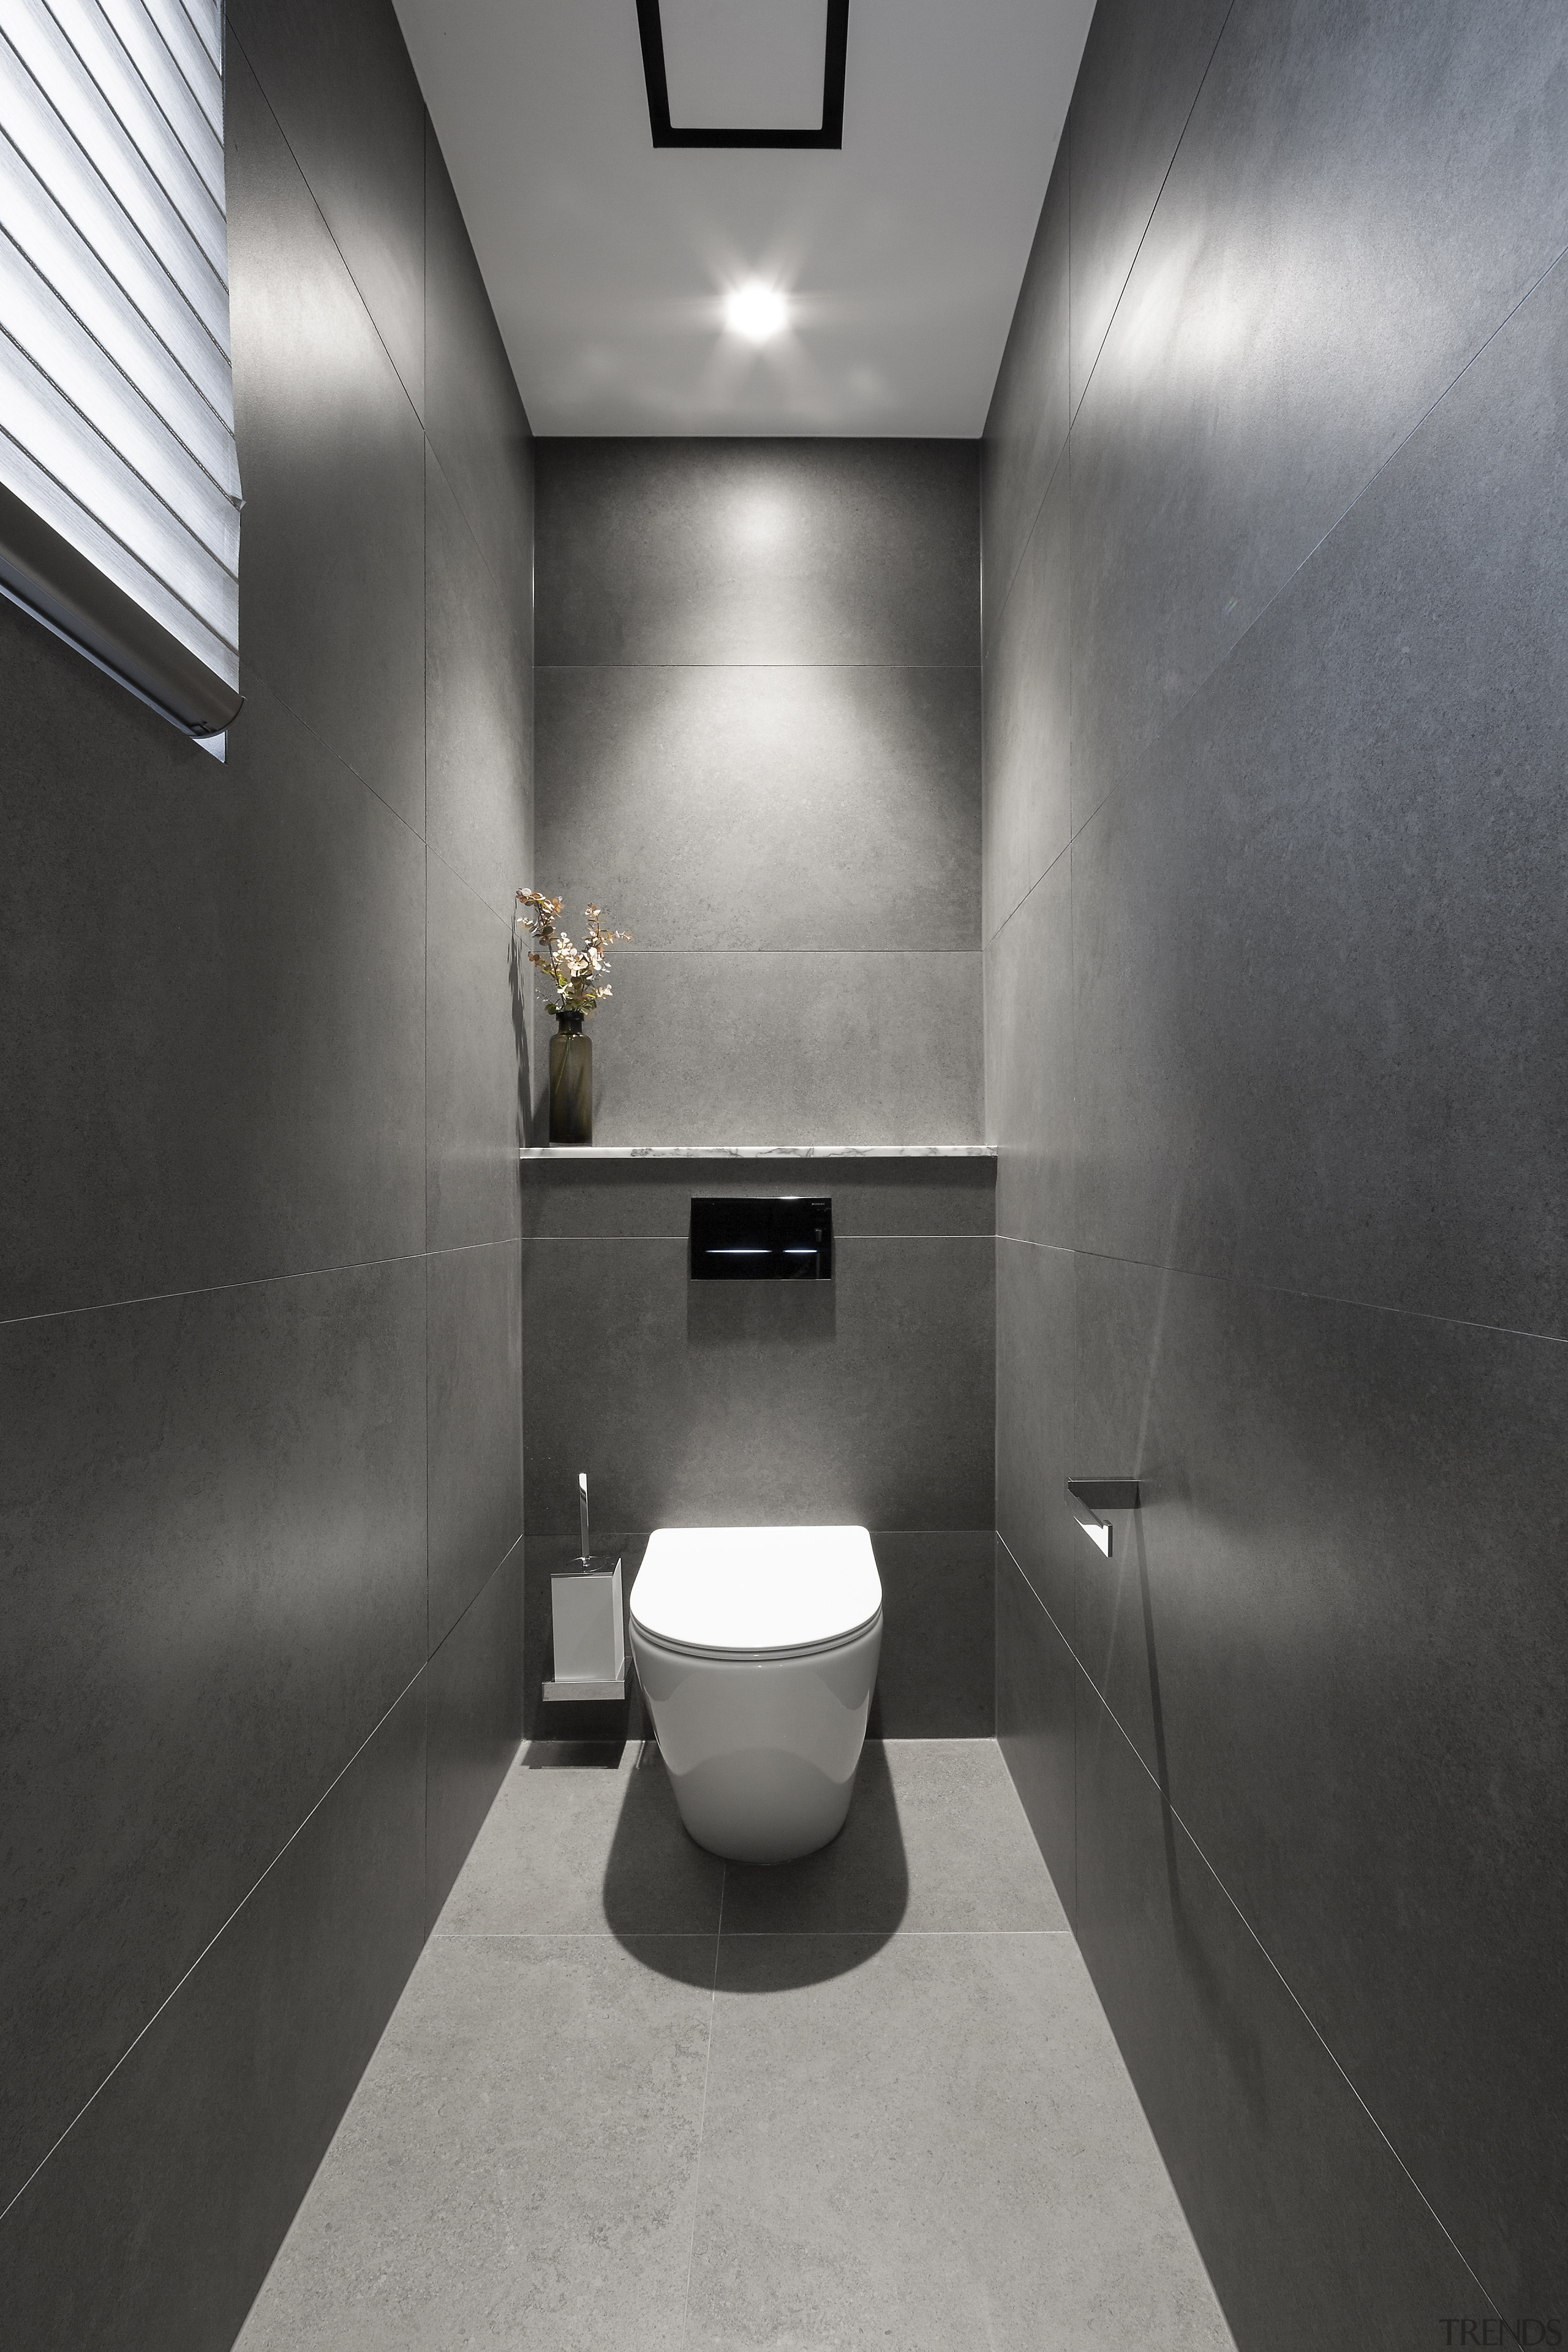 While this shower area is in predominantly grey gray, black